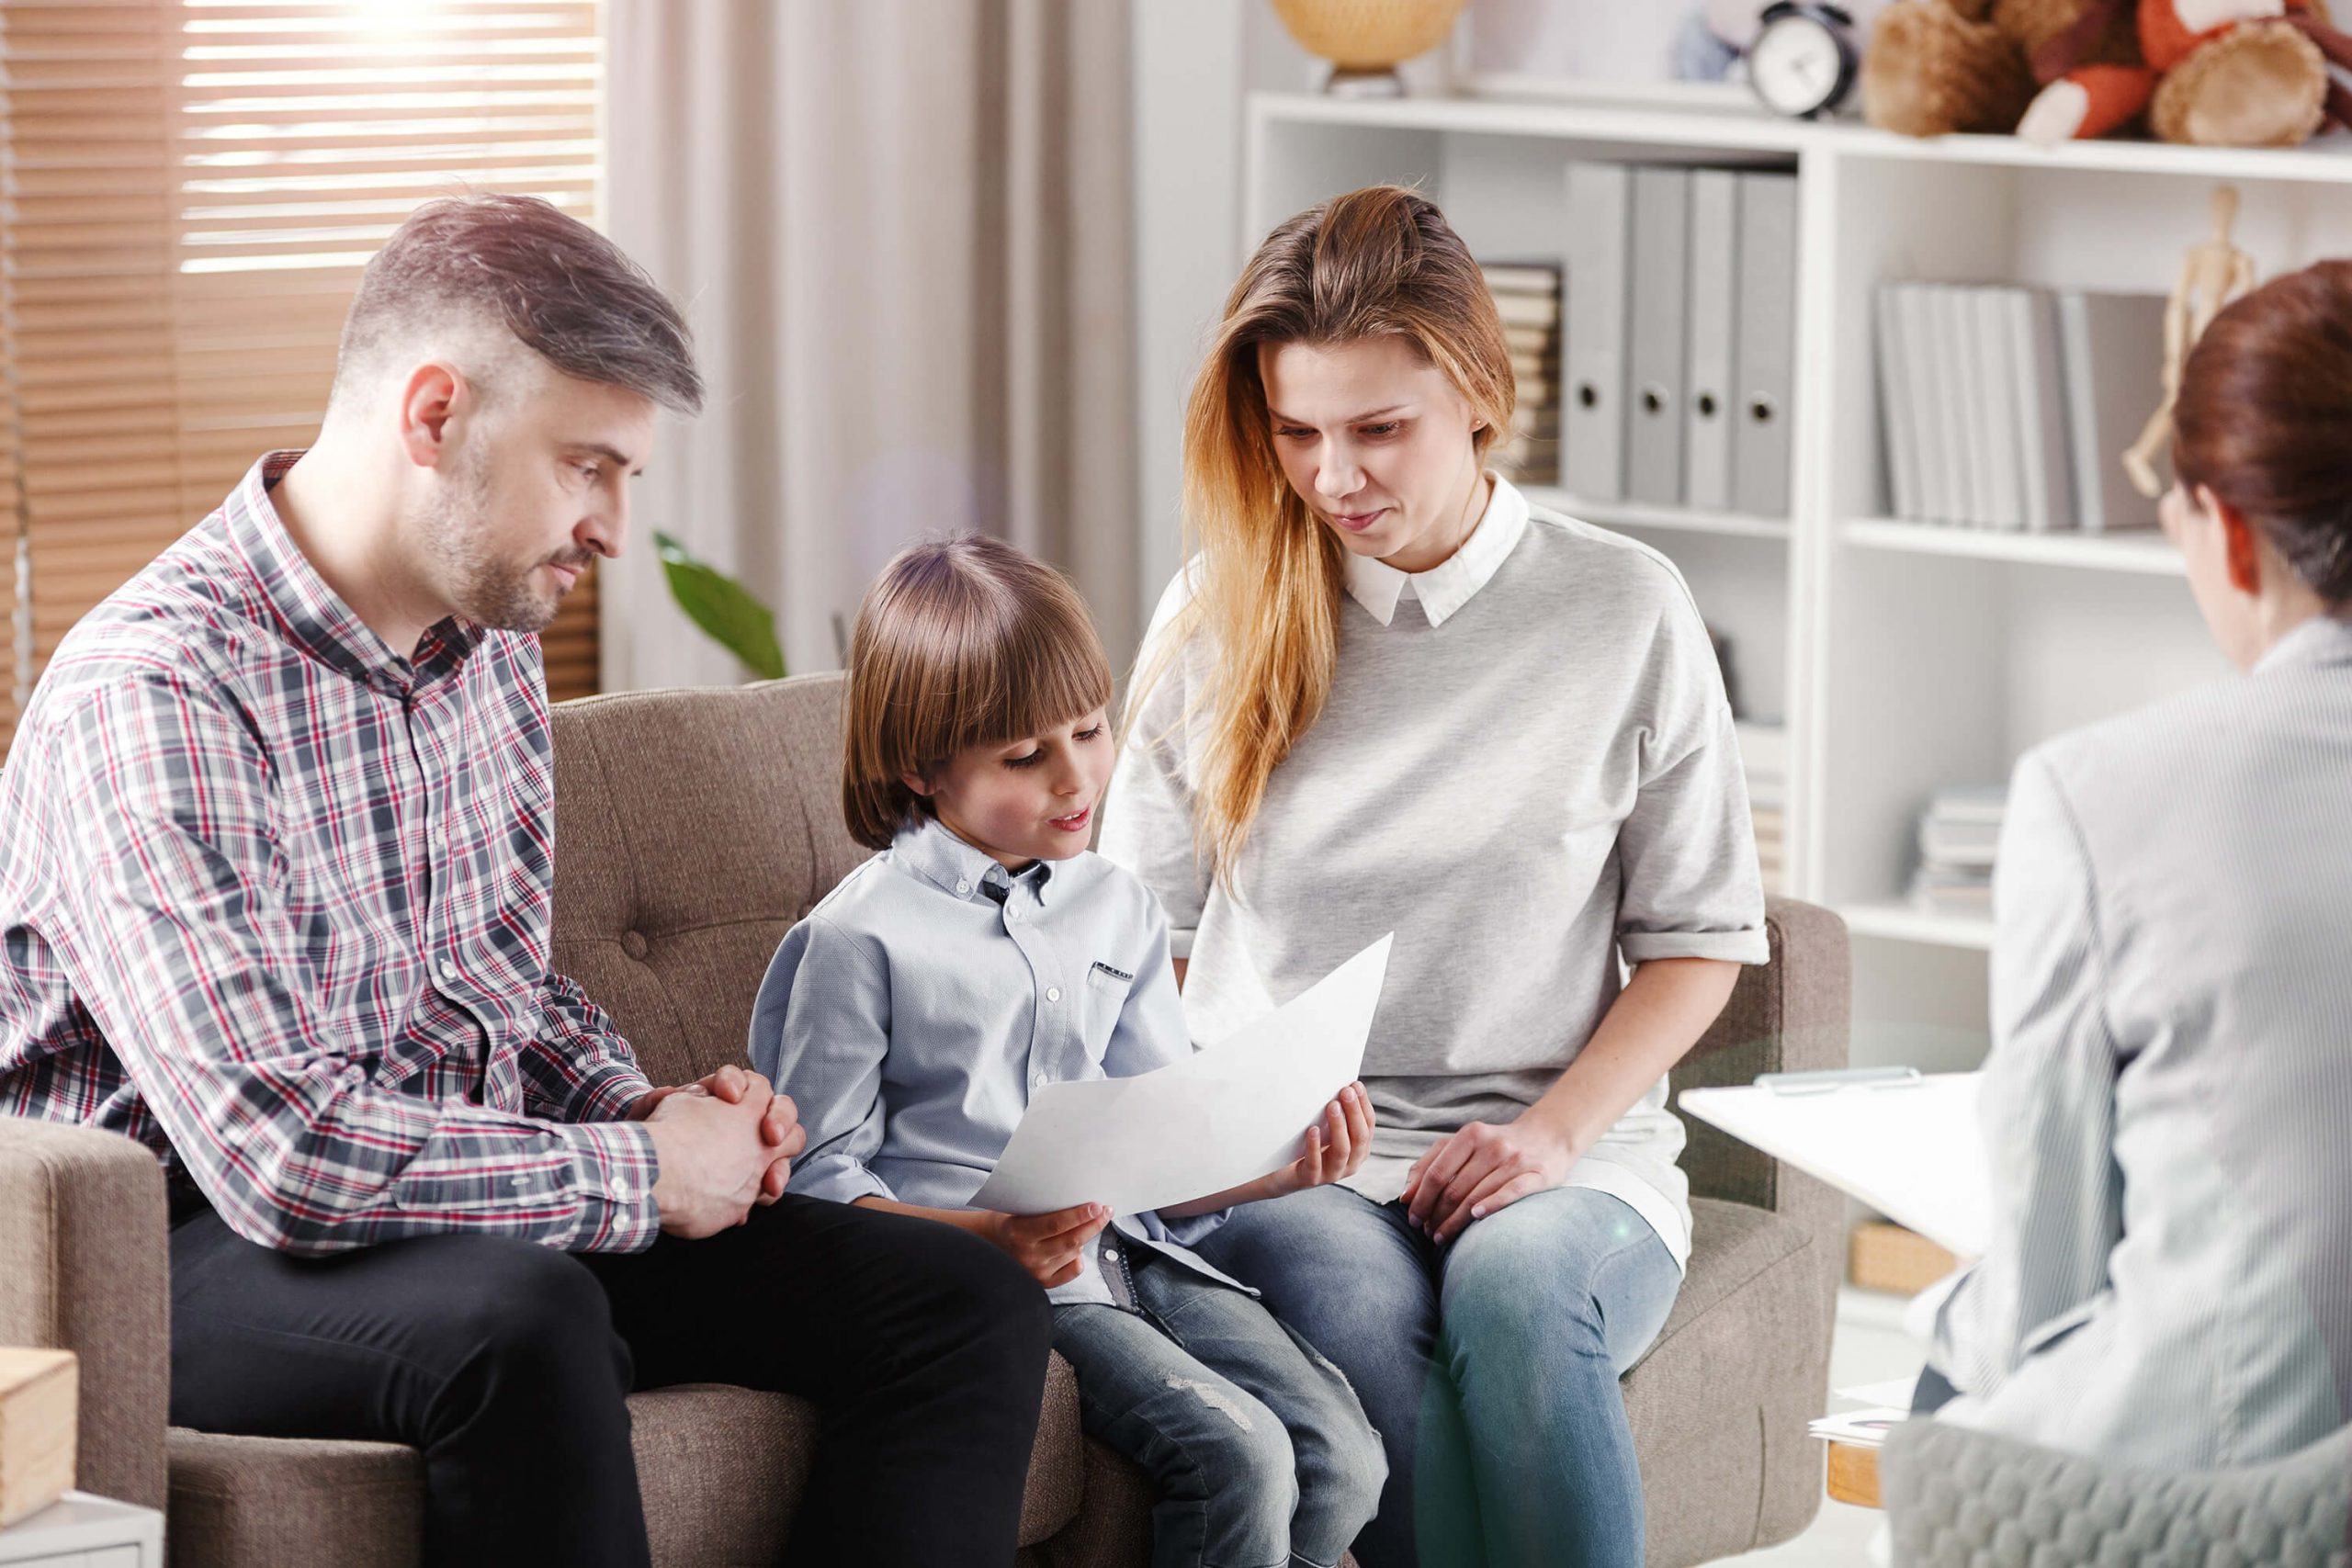 Parents and child on couch